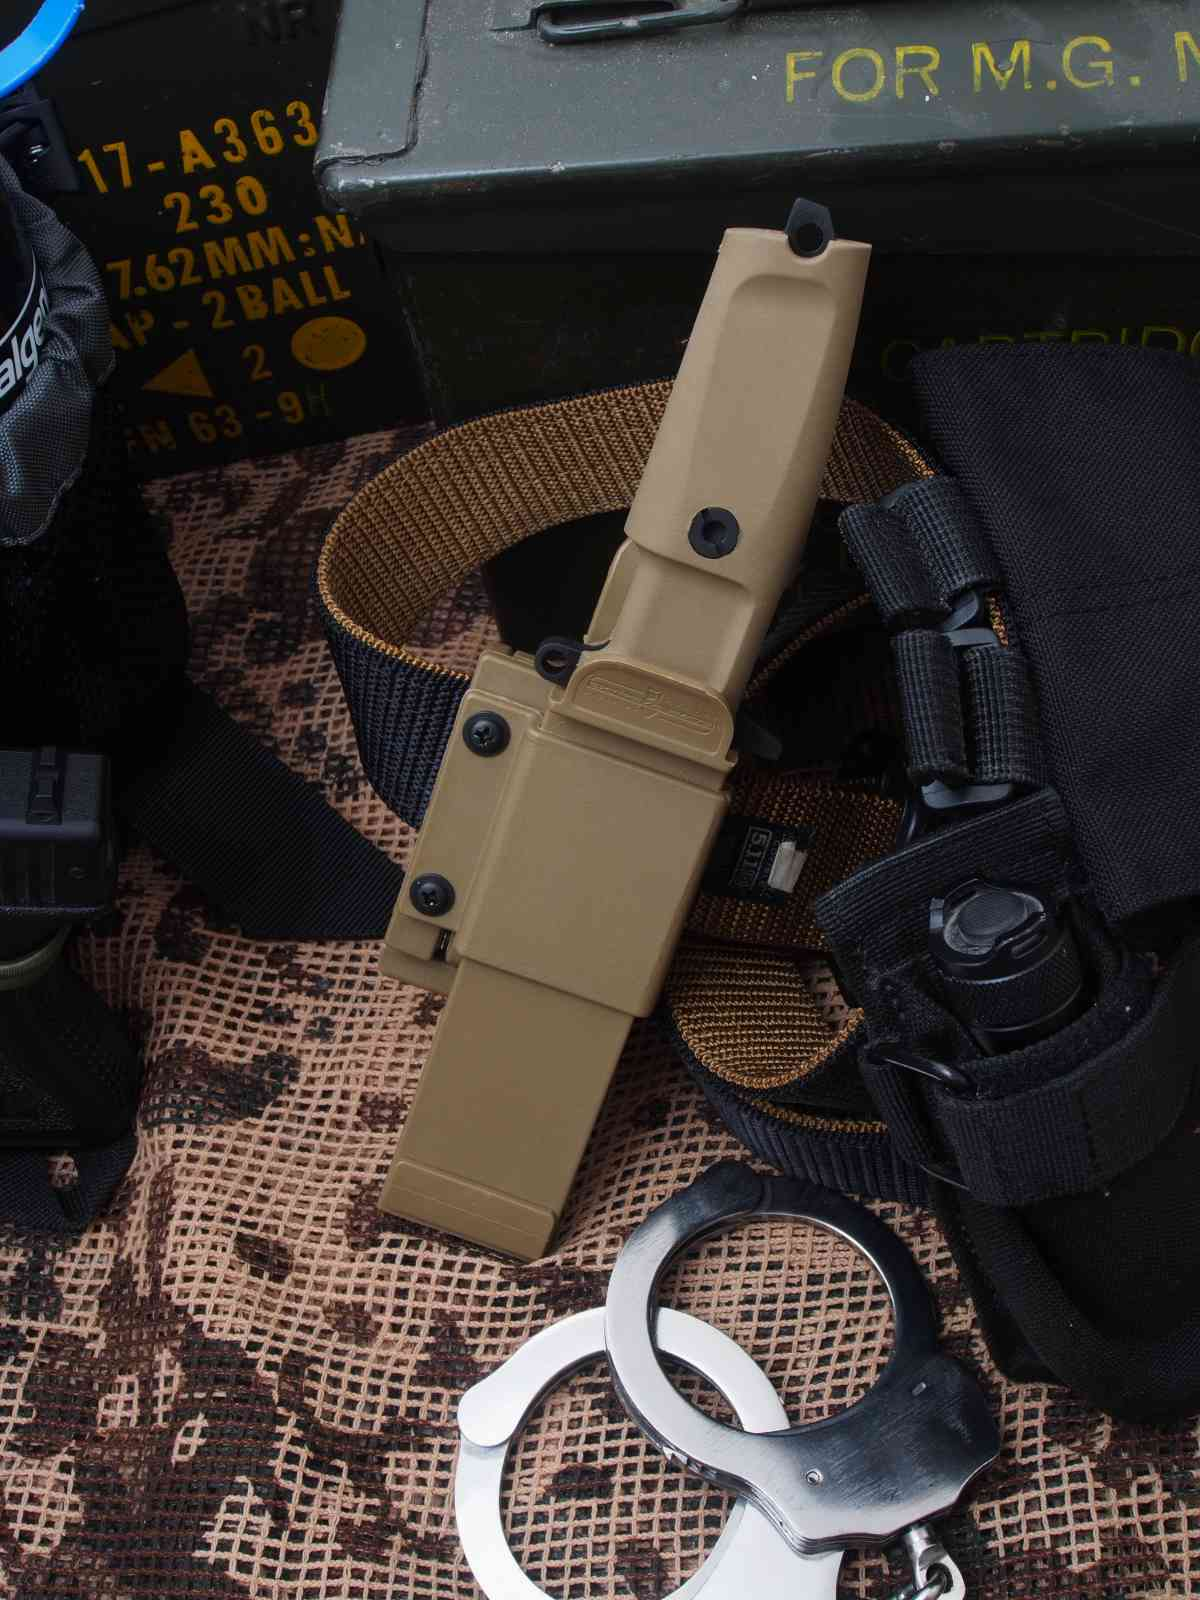 extrema Ratio Col Moschin Compact Desert Warfare 3